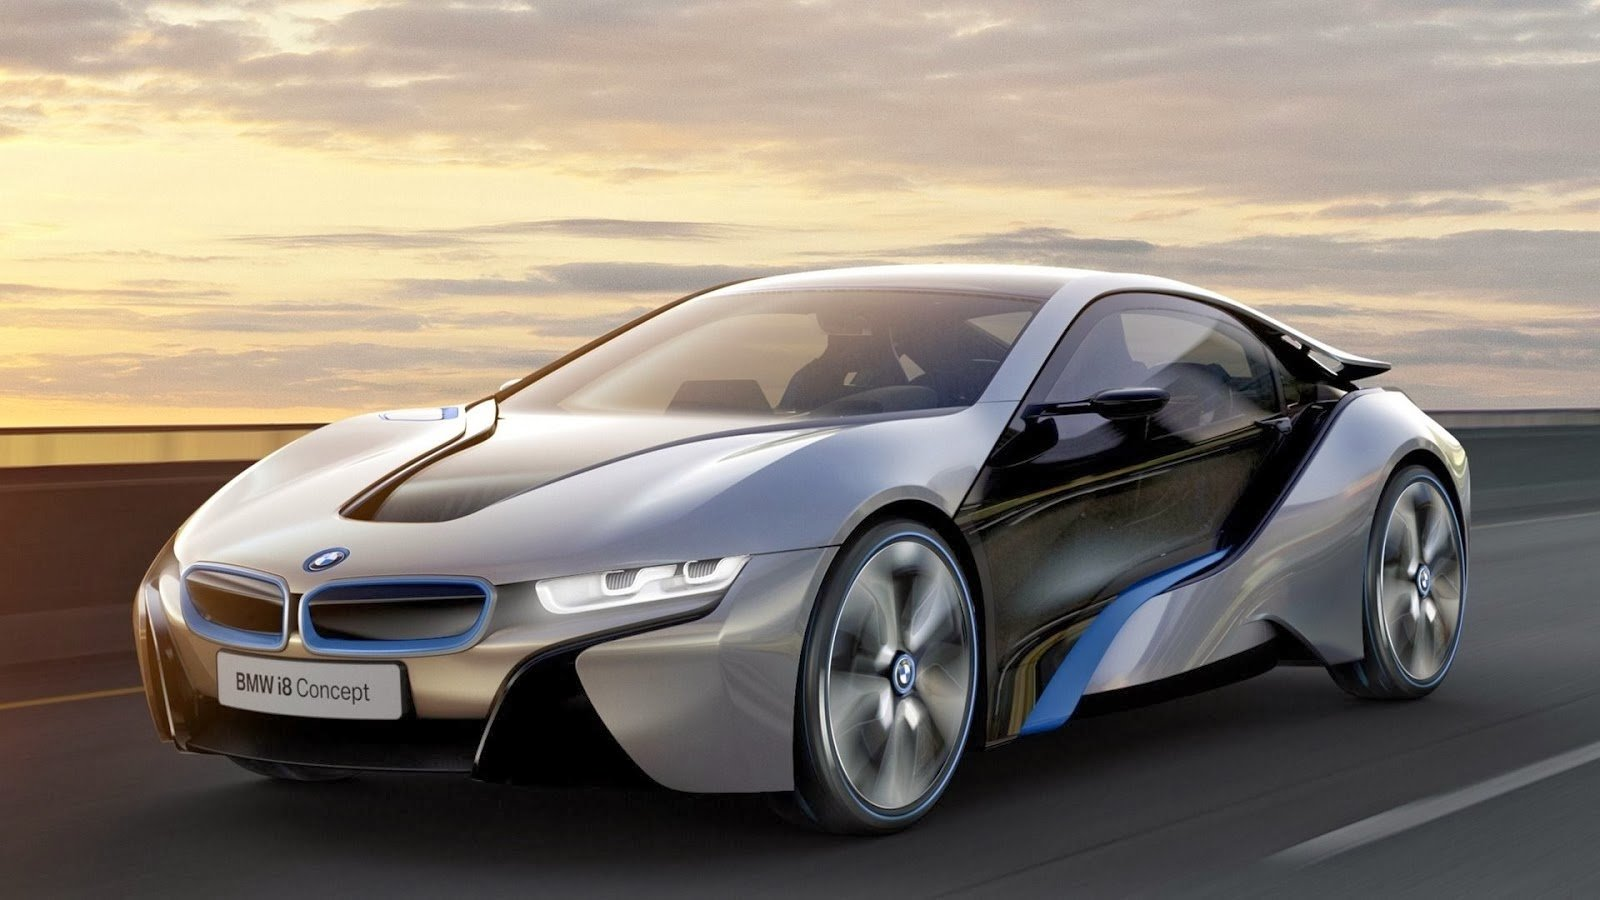 Latest All Hot Informations Download Bmw I8 Cars Hd Wallpapers 1080P Free Download